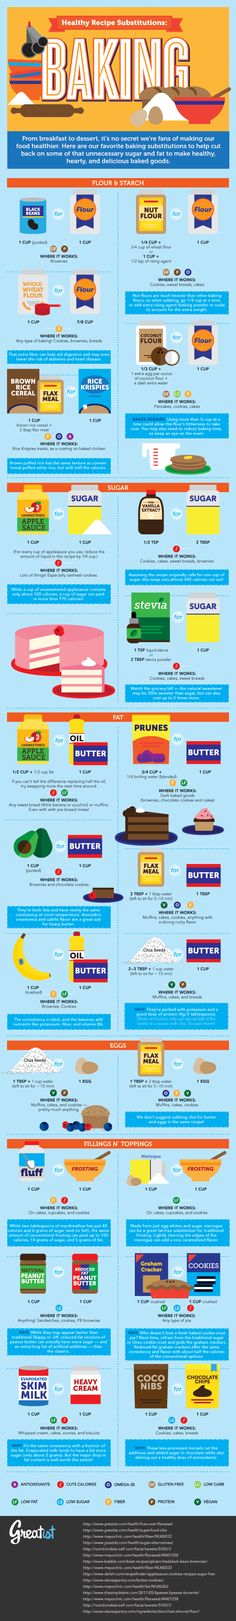 Baking Substitutes...some of these I would never use like stevia!